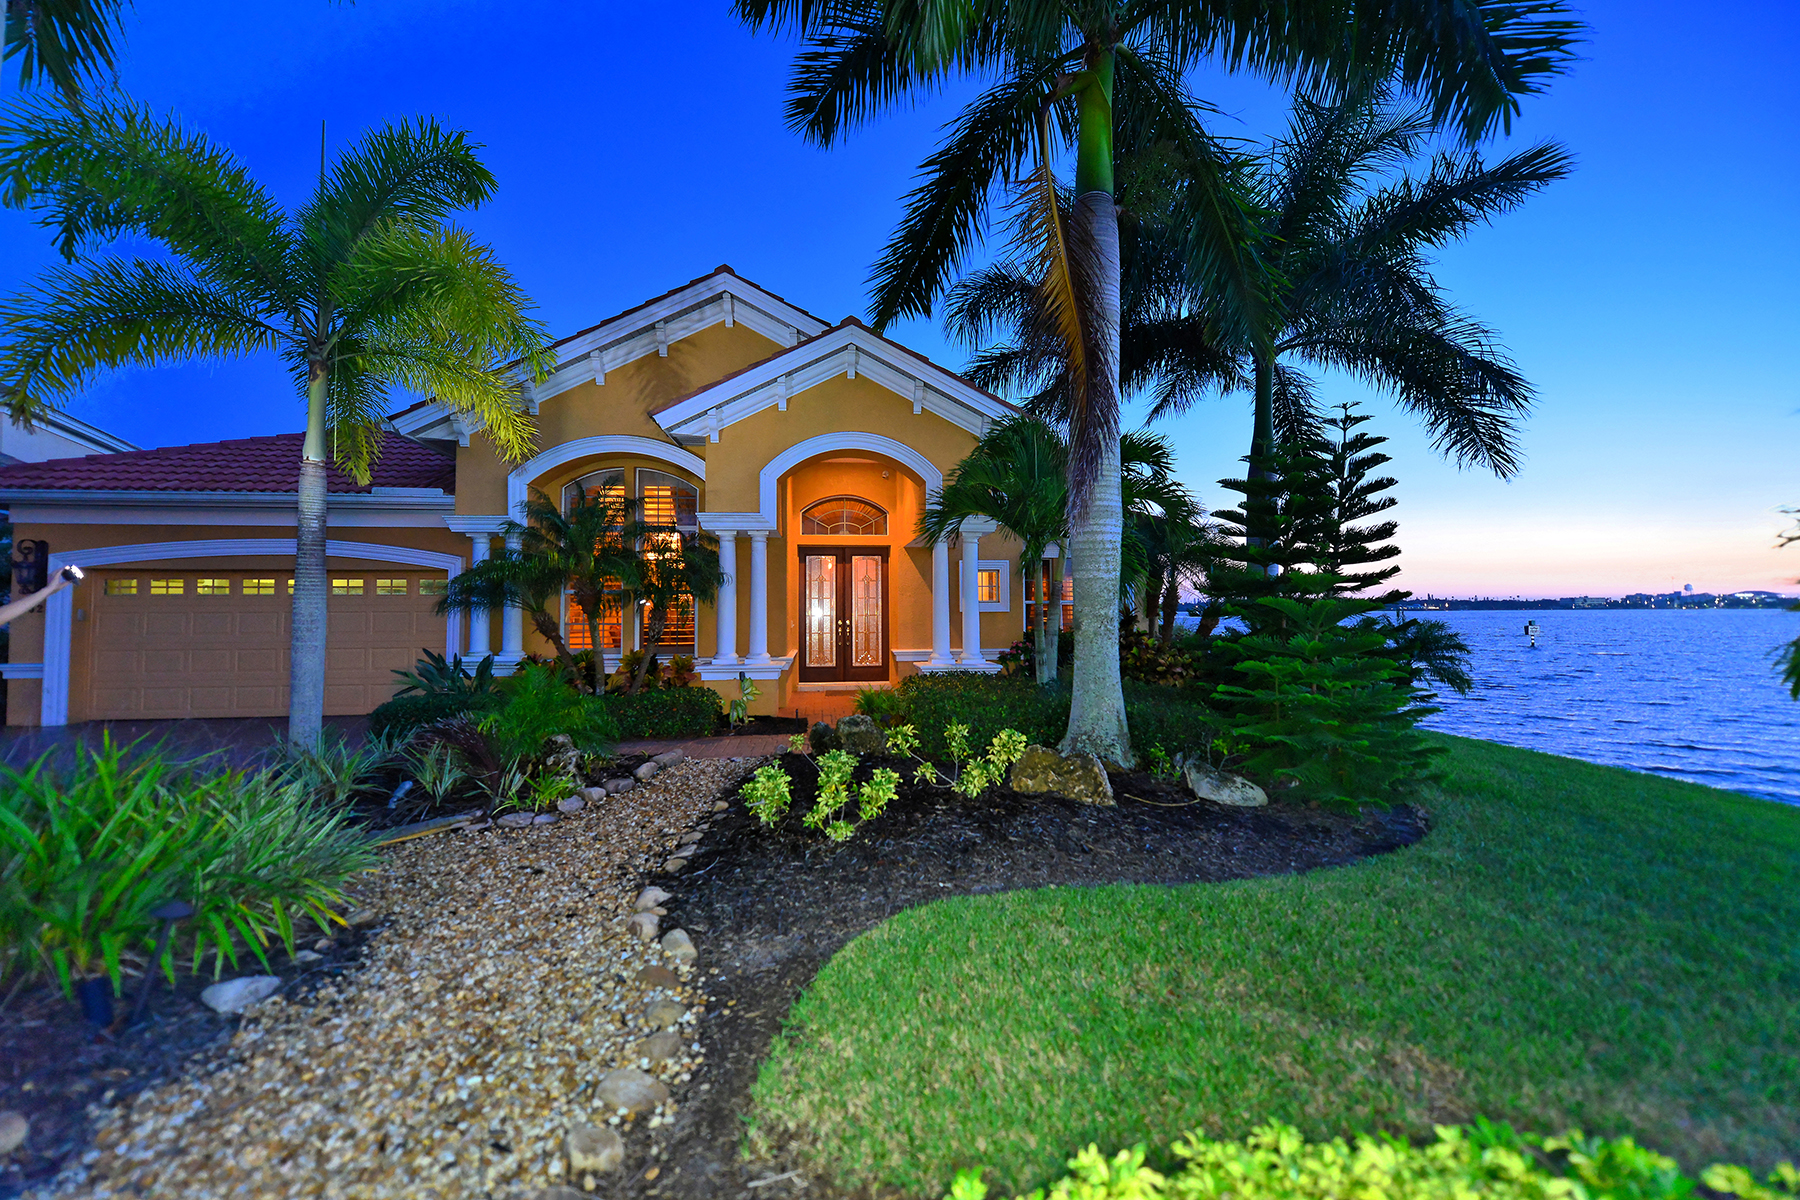 Casa Unifamiliar por un Venta en PENINSULA AT RIVIERA DUNES 102 12th Ave E Palmetto, Florida 34221 Estados Unidos